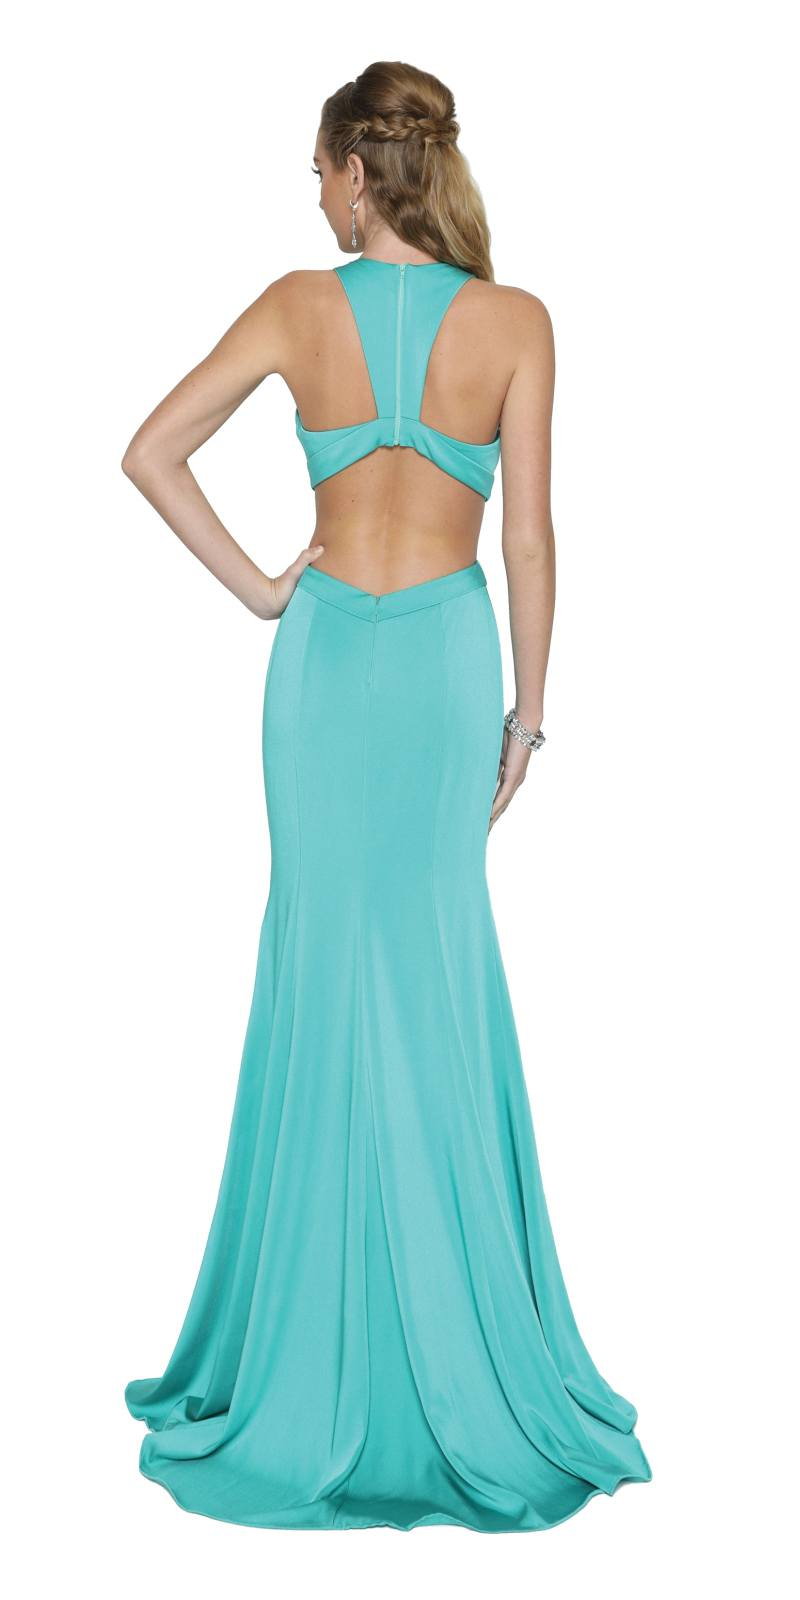 Luxury Grease Prom Dress Picture Collection - Womens Dresses & Gowns ...